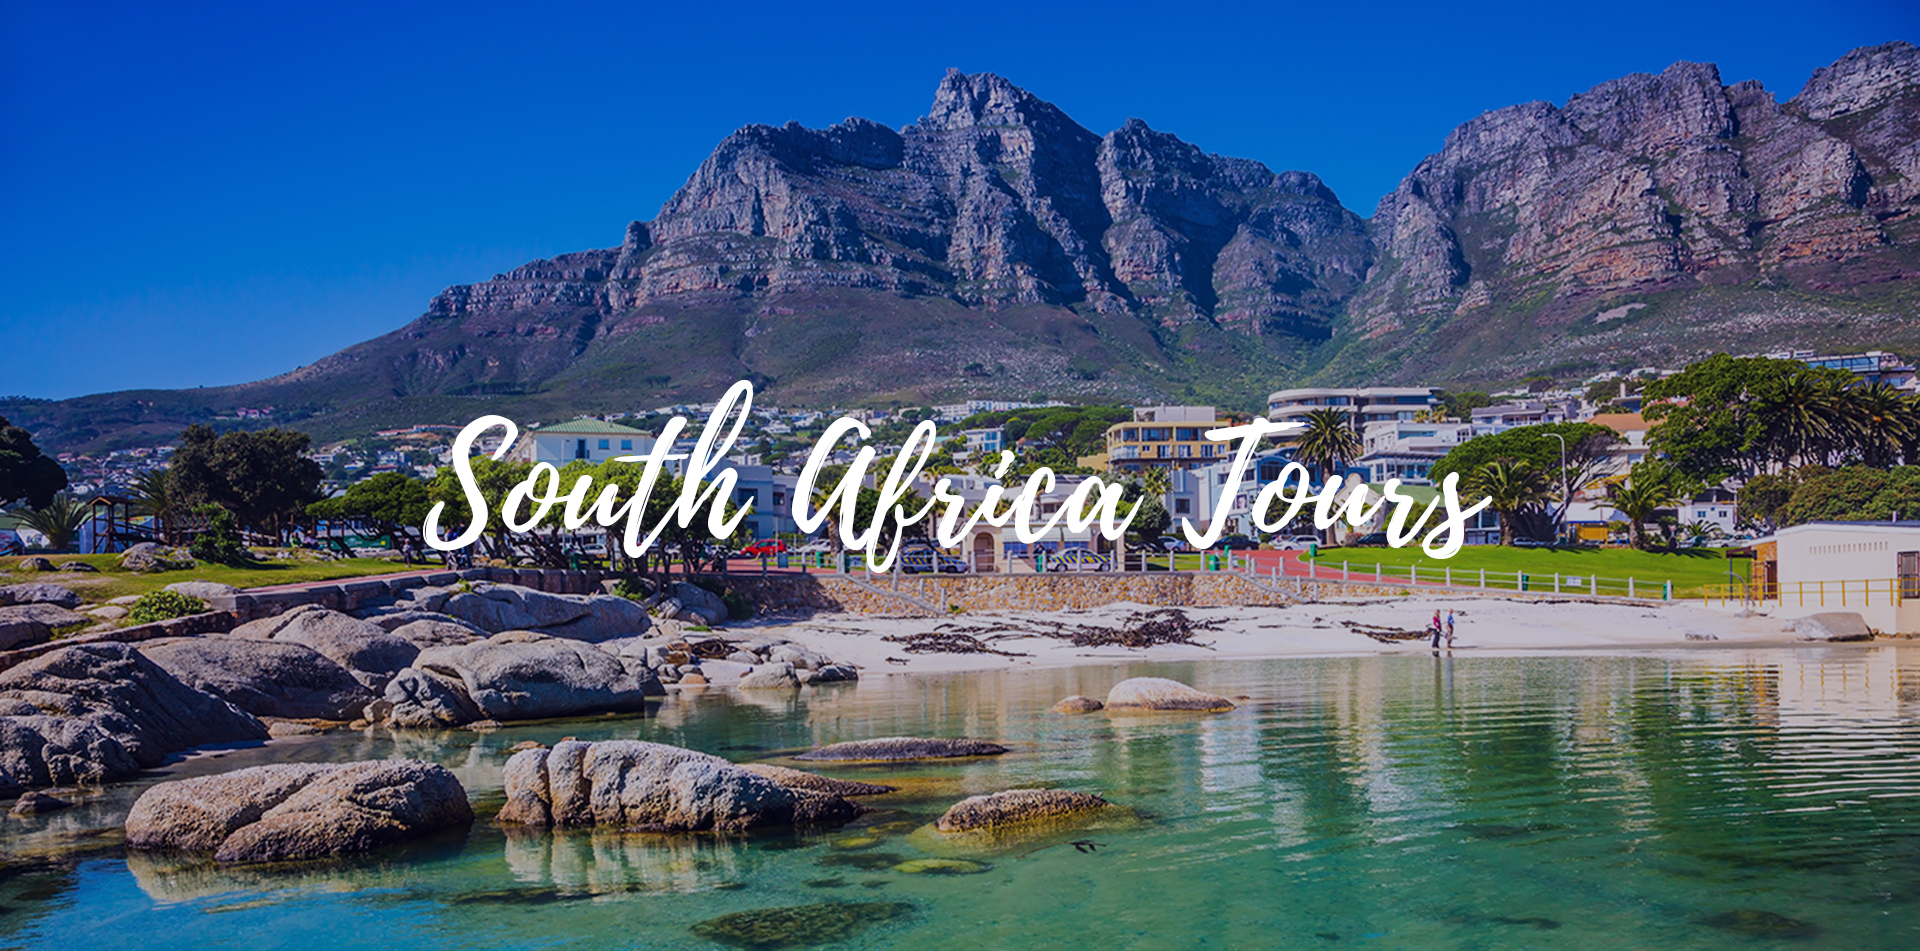 Africa South Africa Cape Town wildlife safari wine vineyards beautiful coast- luxury vacation destinations